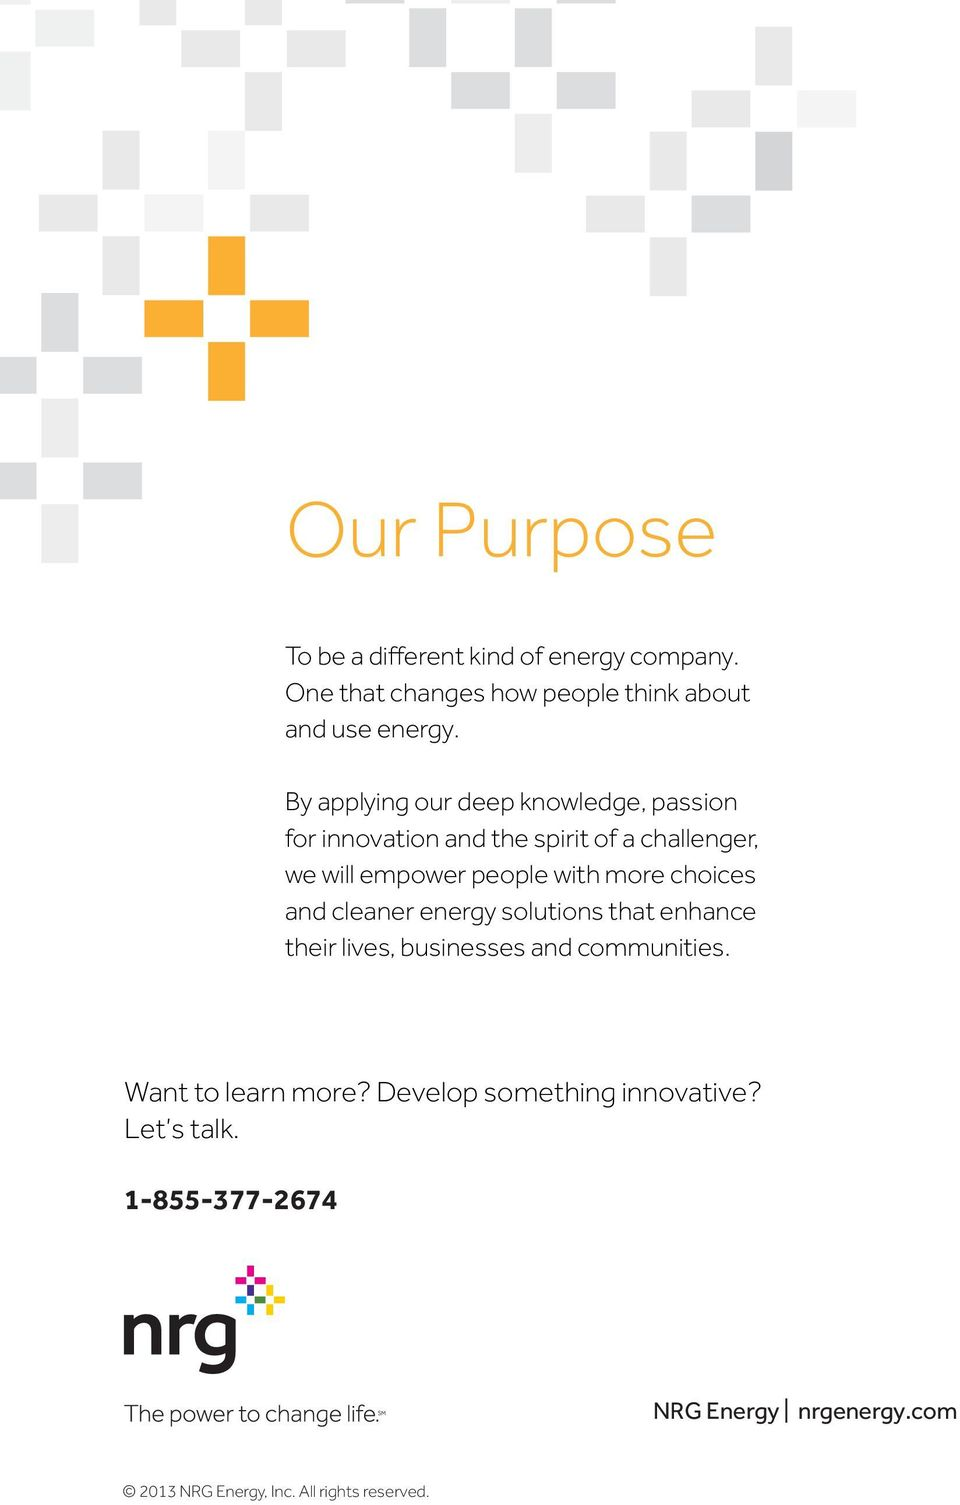 more choices and cleaner energy solutions that enhance their lives, businesses and communities. Want to learn more?